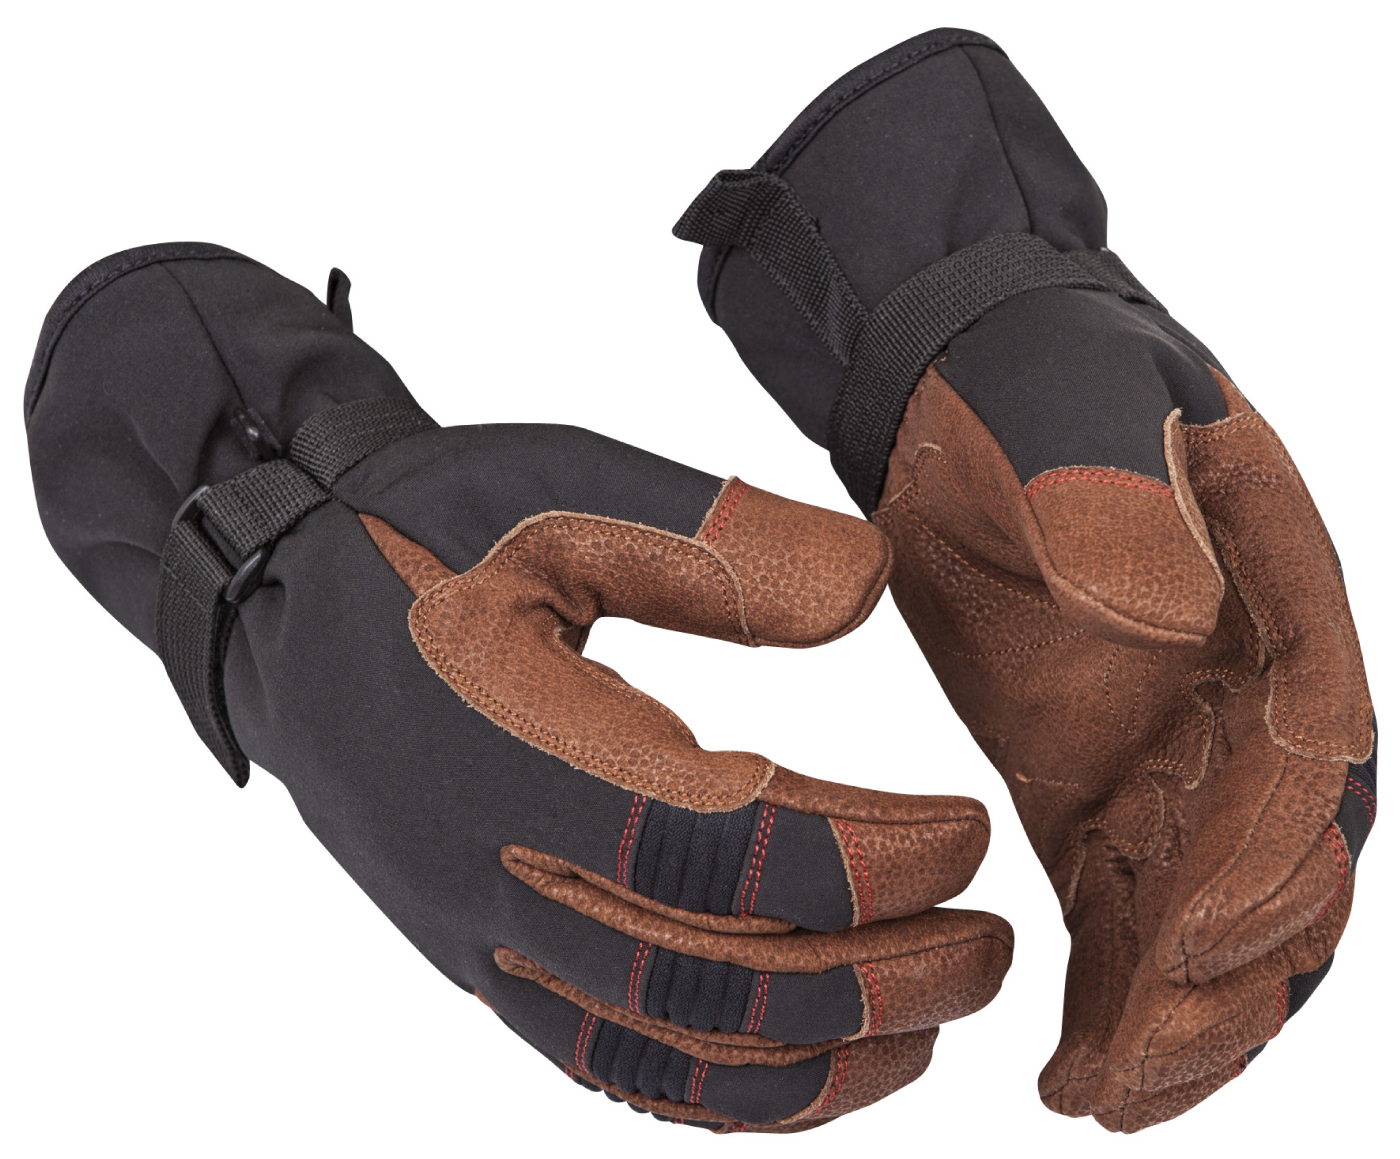 Warm Lined Glove GUIDE 9W